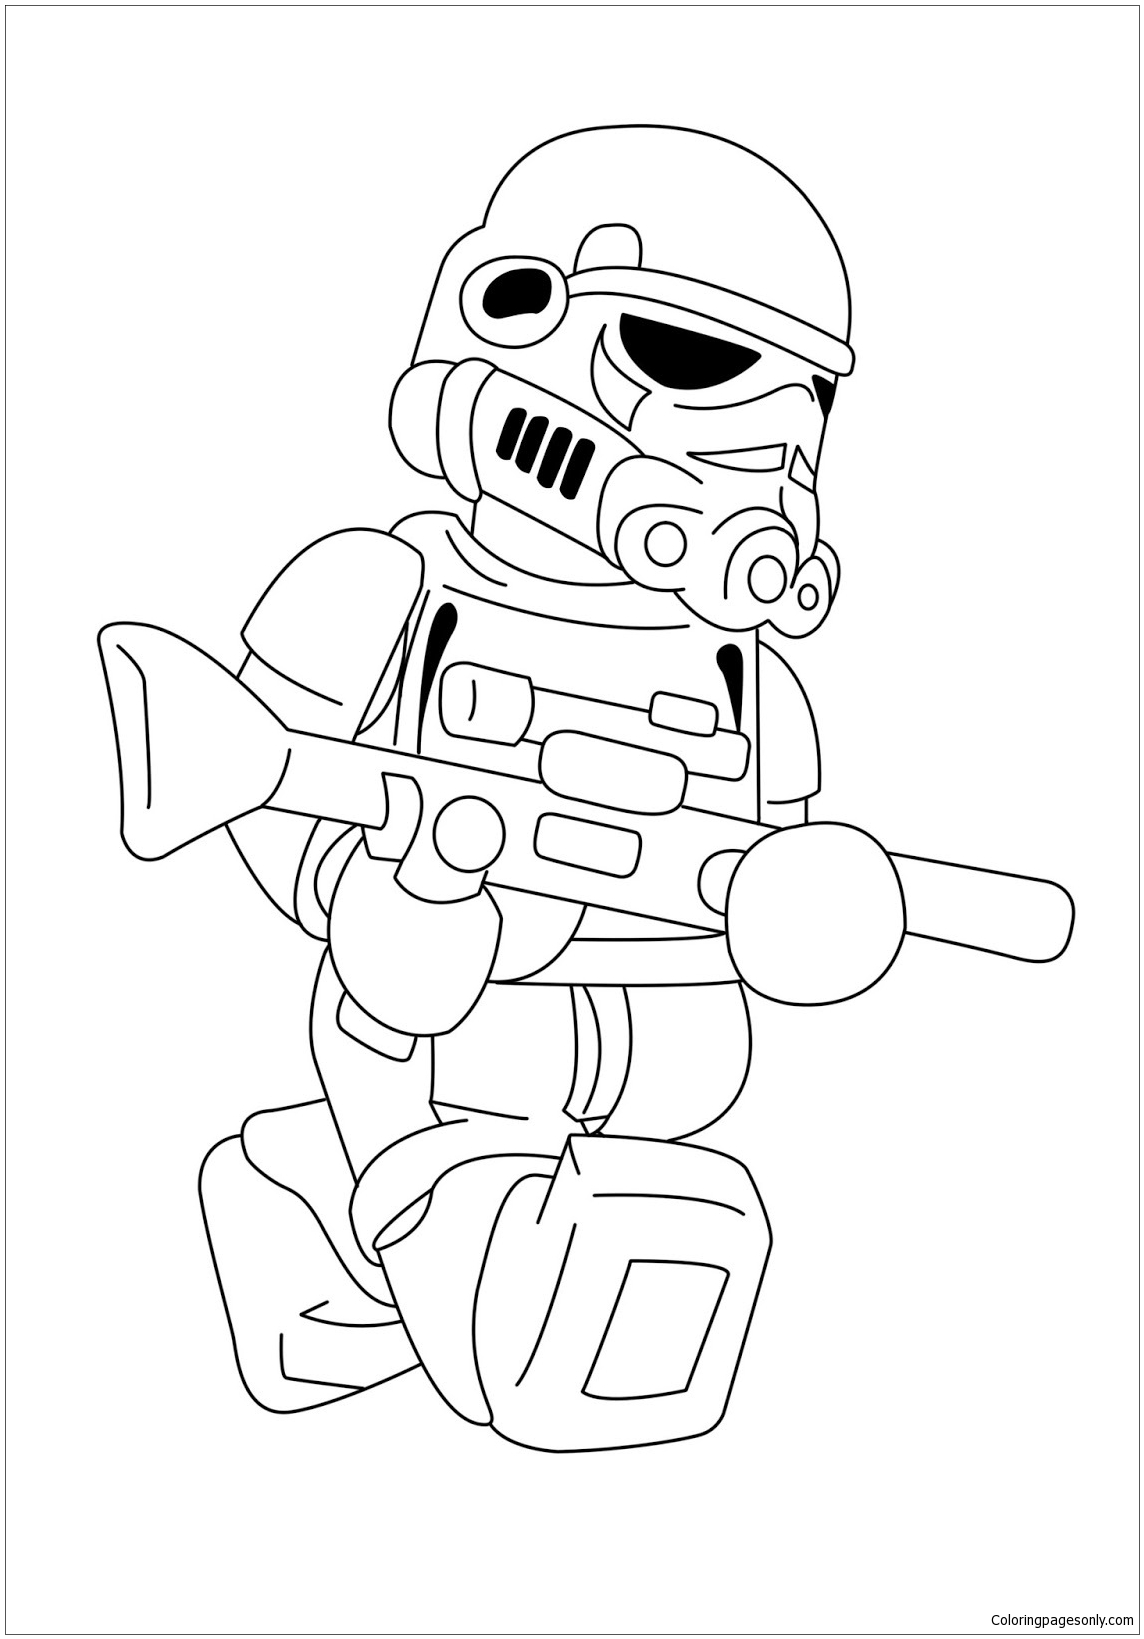 - Lego Darth Vader 1 Coloring Page - Free Coloring Pages Online